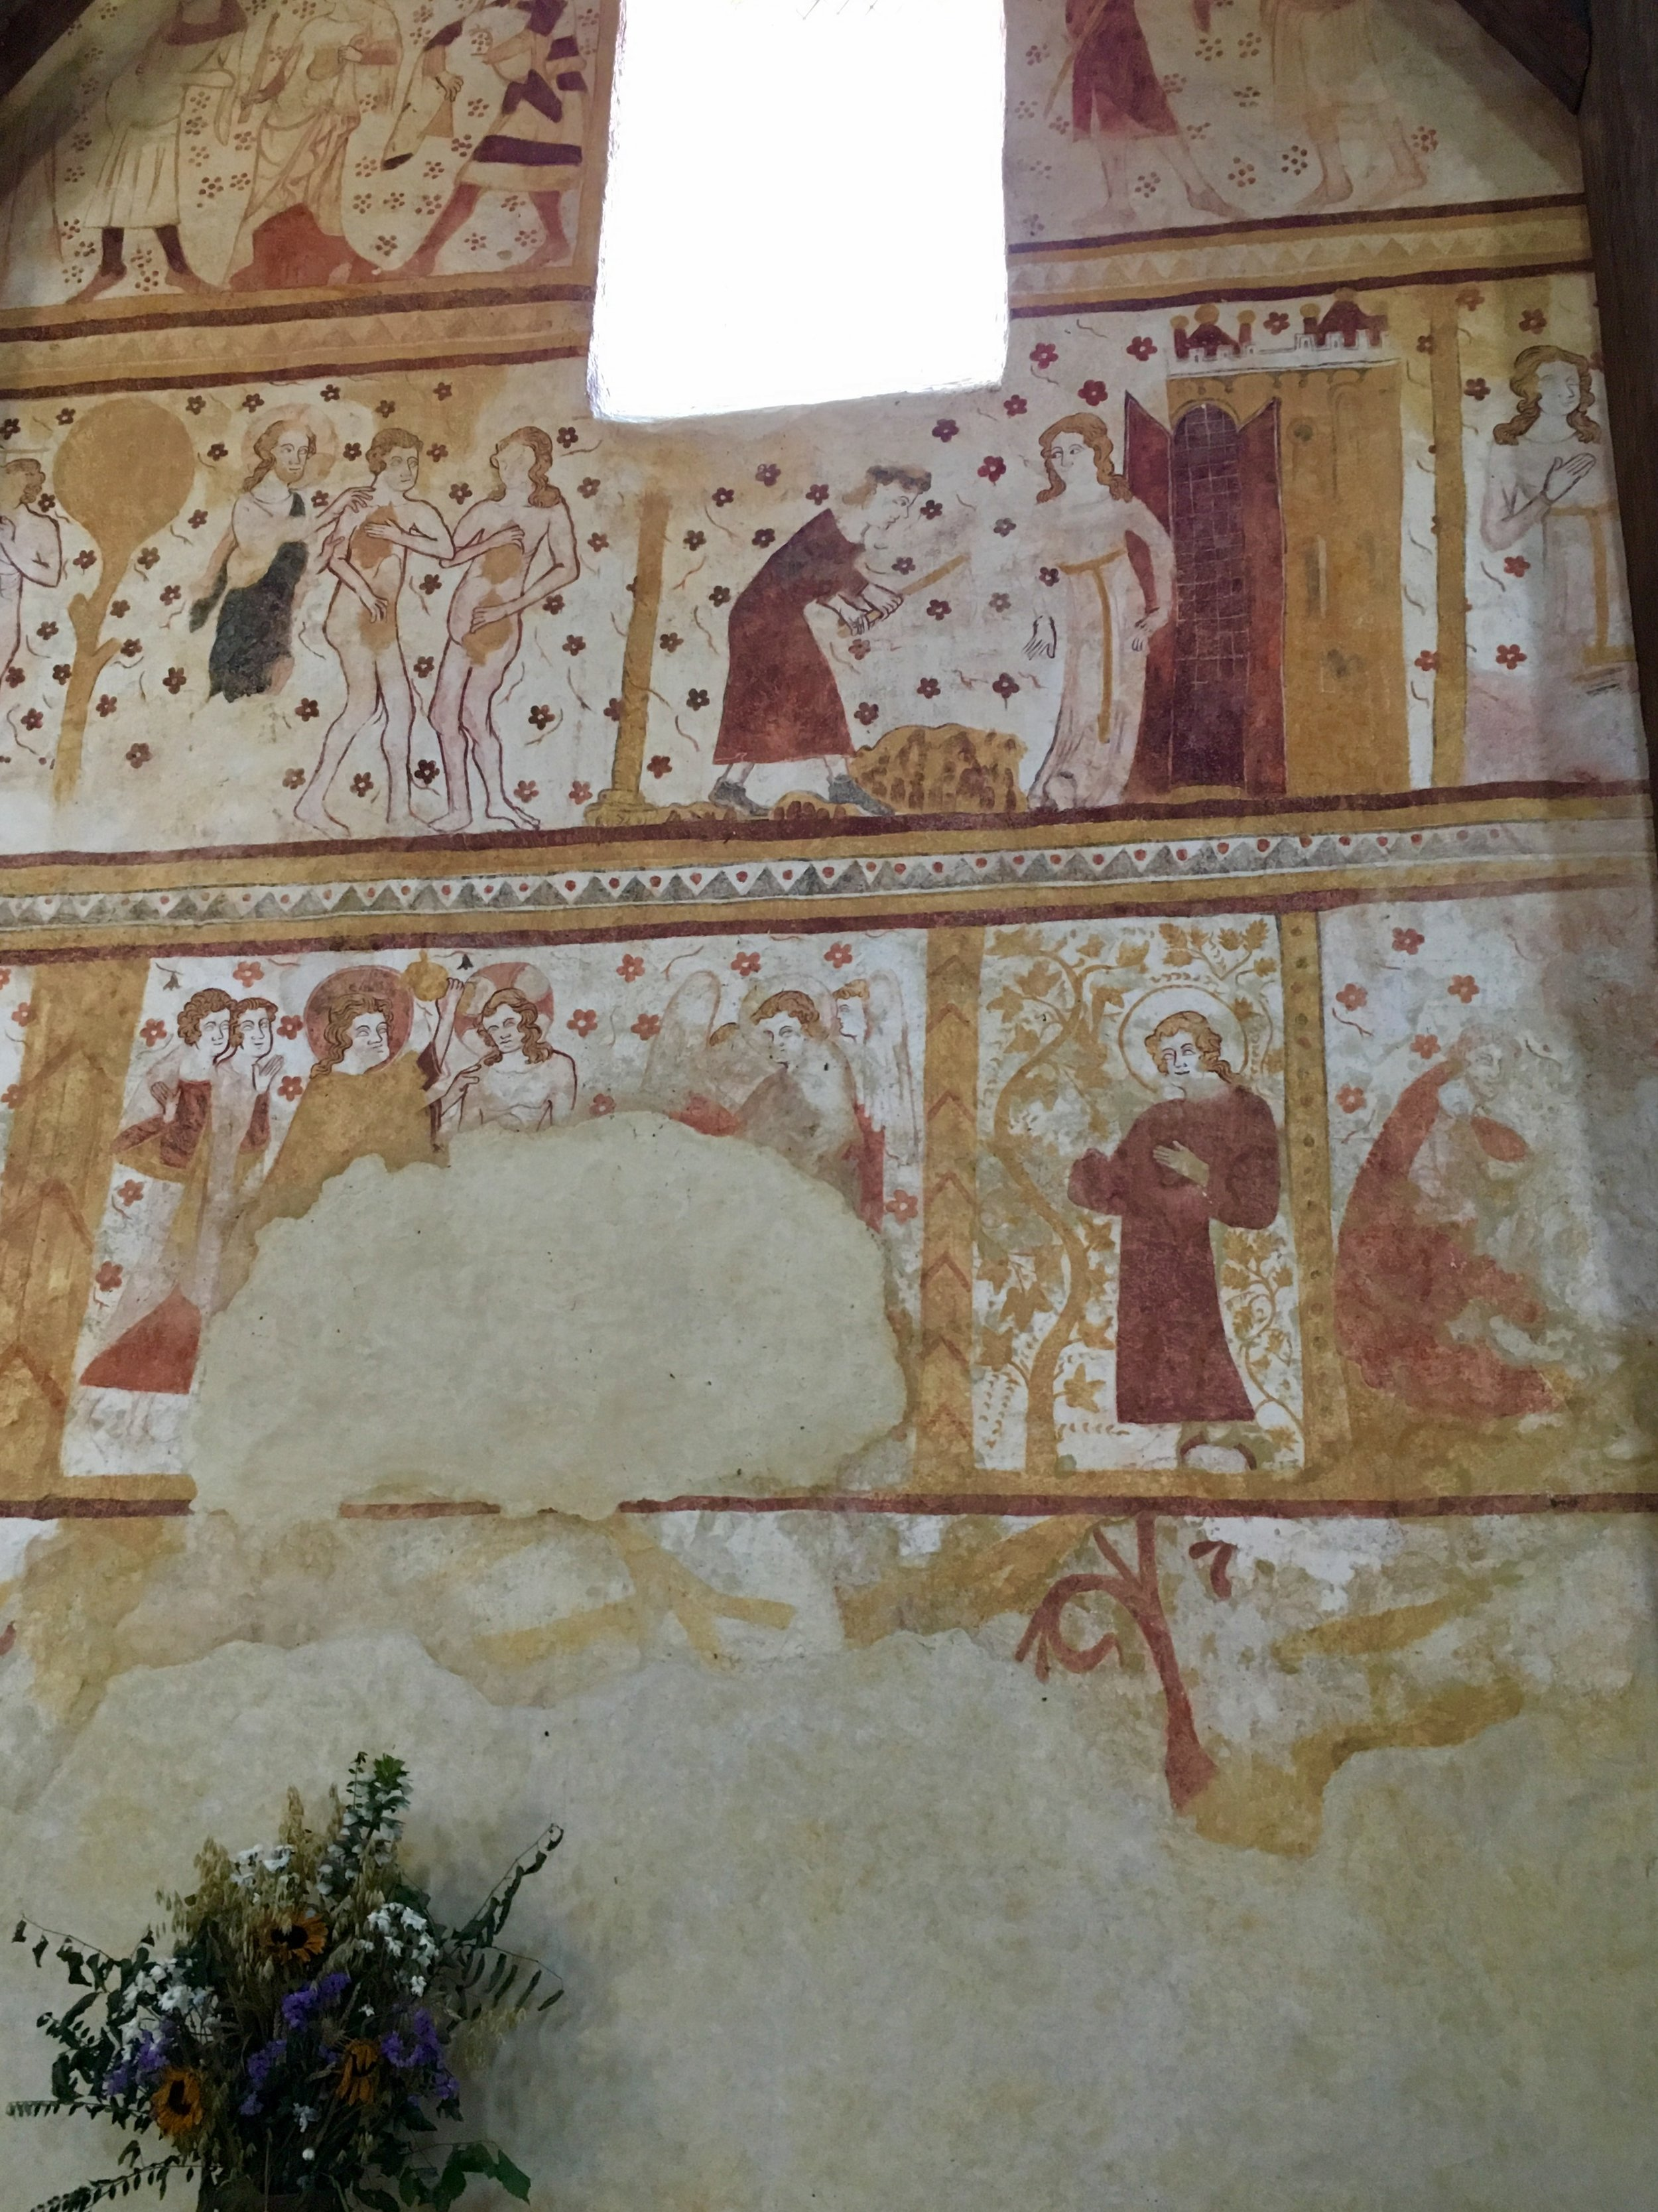 Eglise St. Pierre, south wall, 13th century ochre frescoes.  Above, Adam and Eve being ejected from Paradise and working hard; below, St. John preaching and Christ being baptised.(photograph J. Cook)